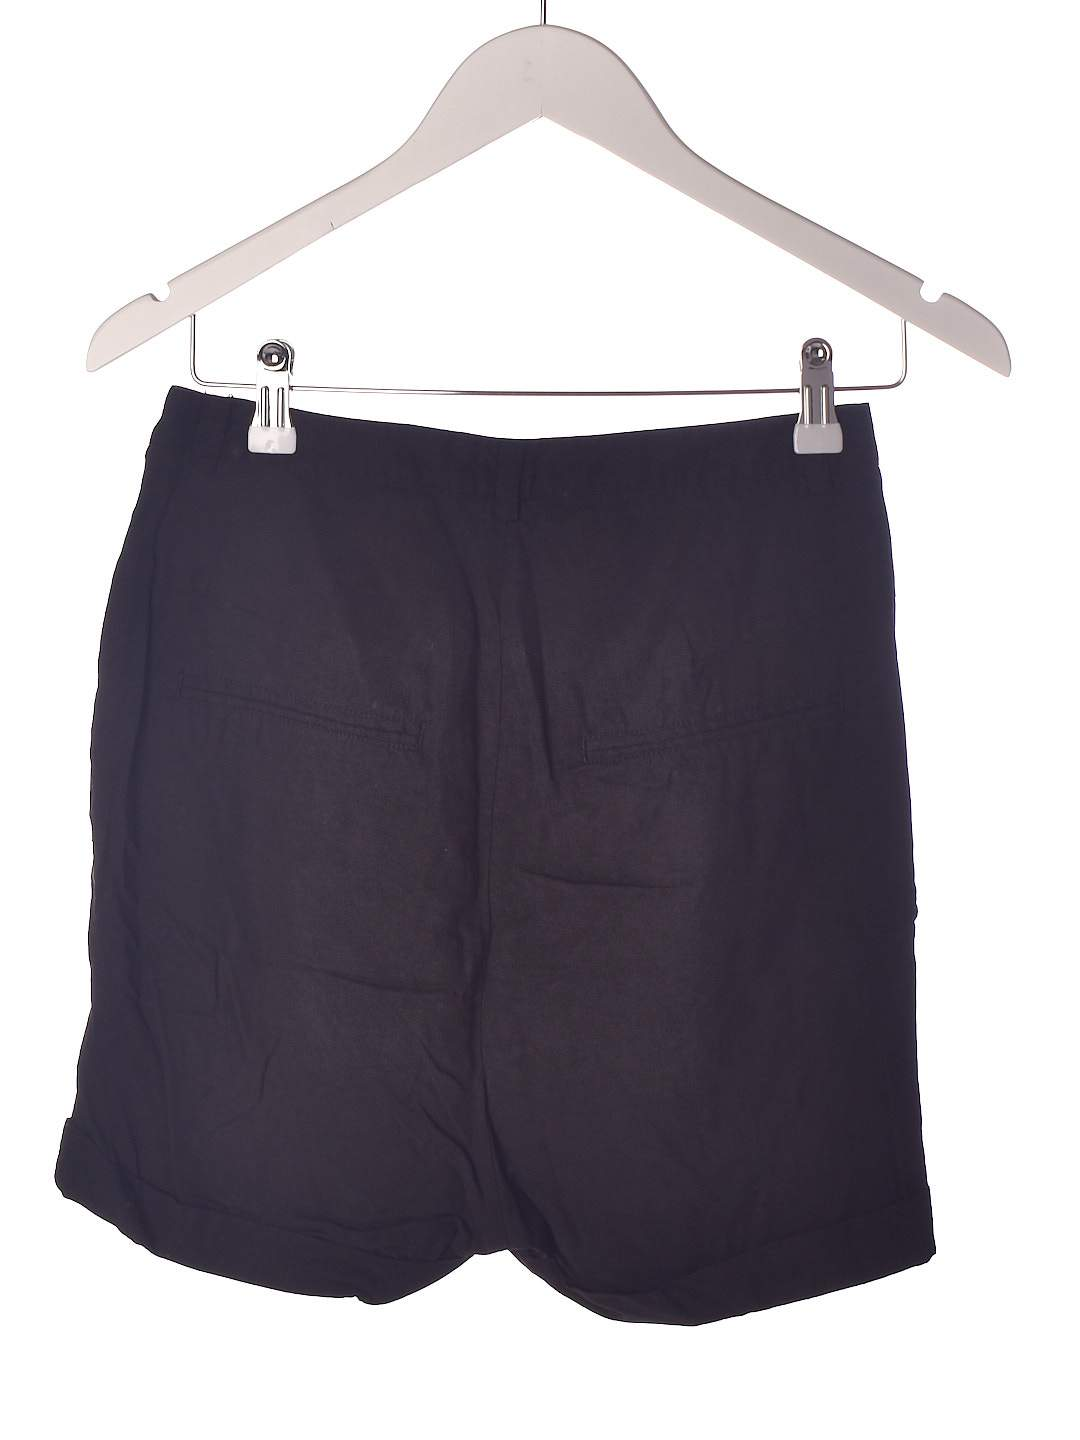 Super fede shorts